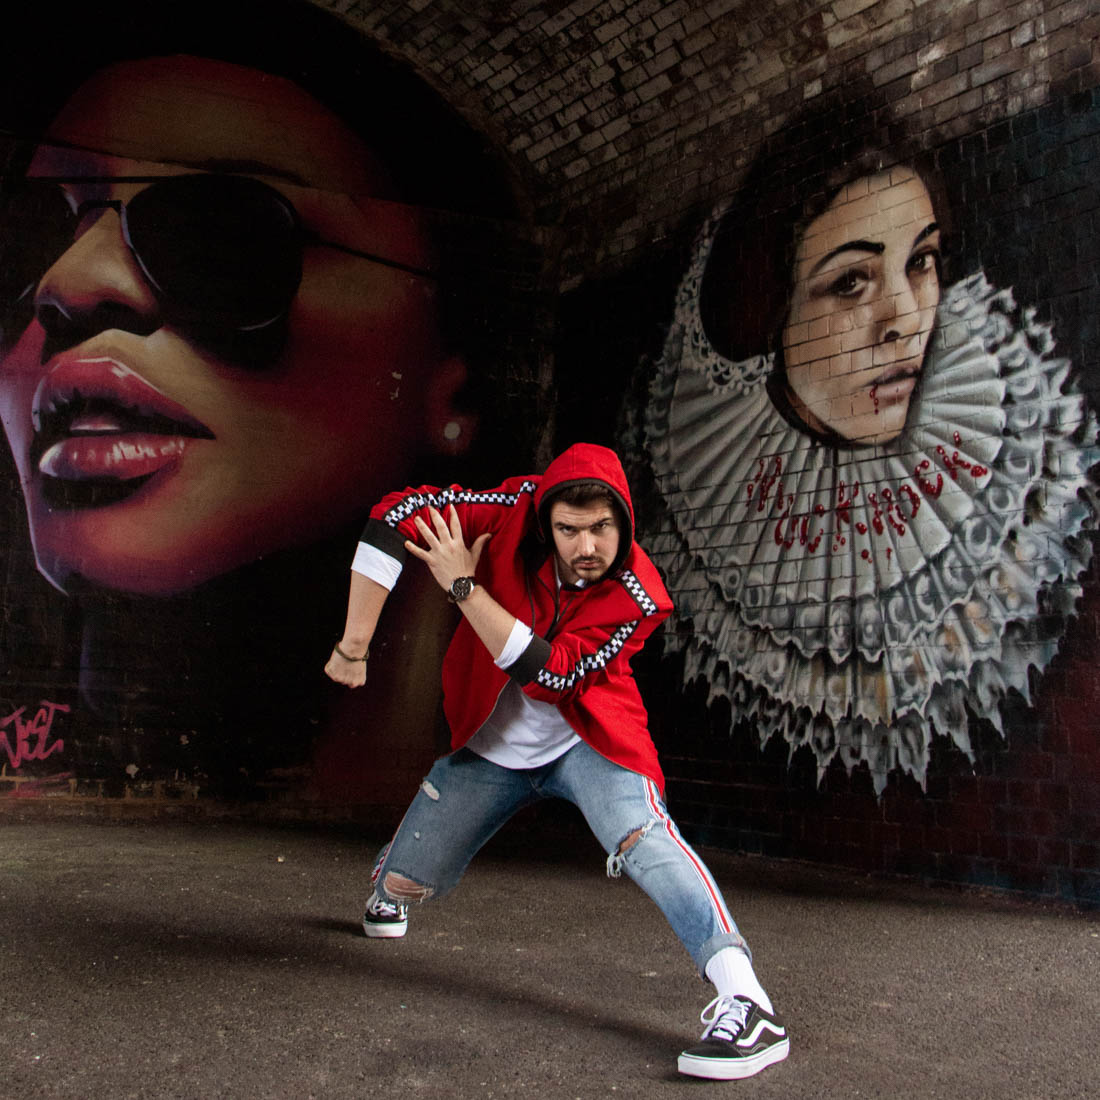 Street dancer striking a pose in front of graffiti wall. Birmingham Digbeth, dance photoshoot